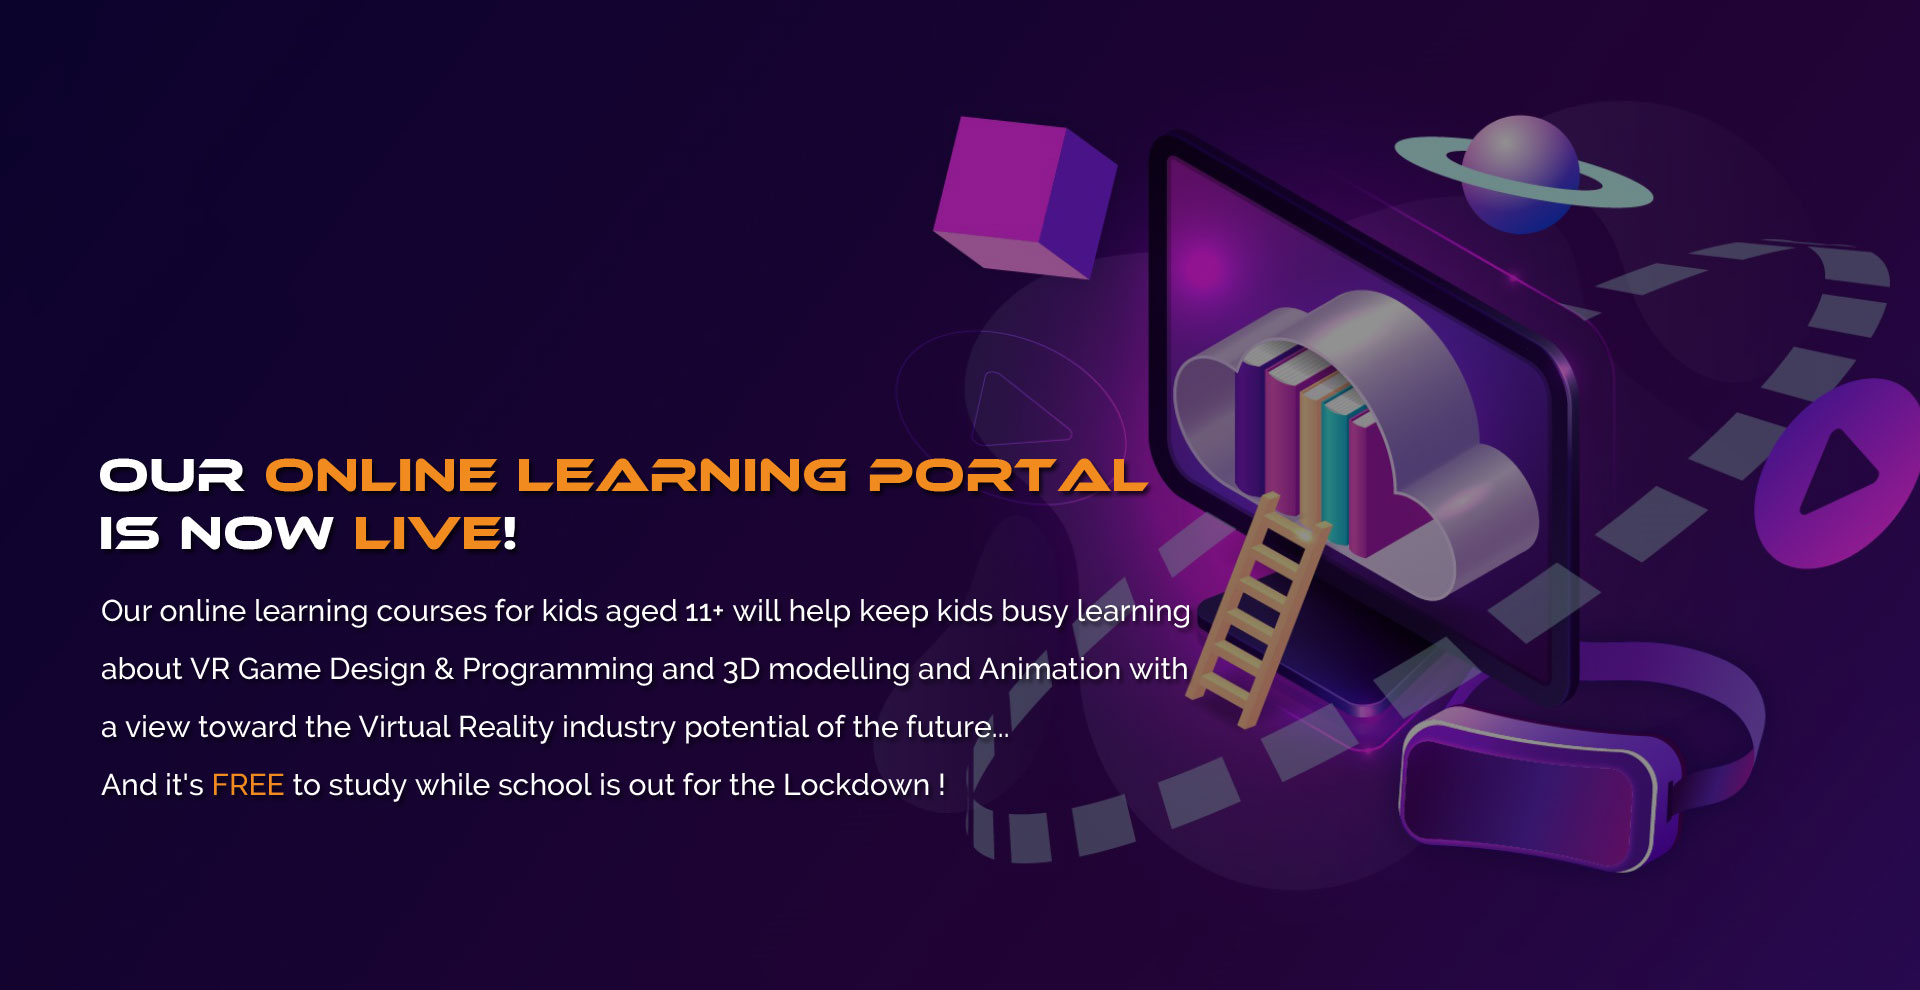 Our online learning portal is now live!